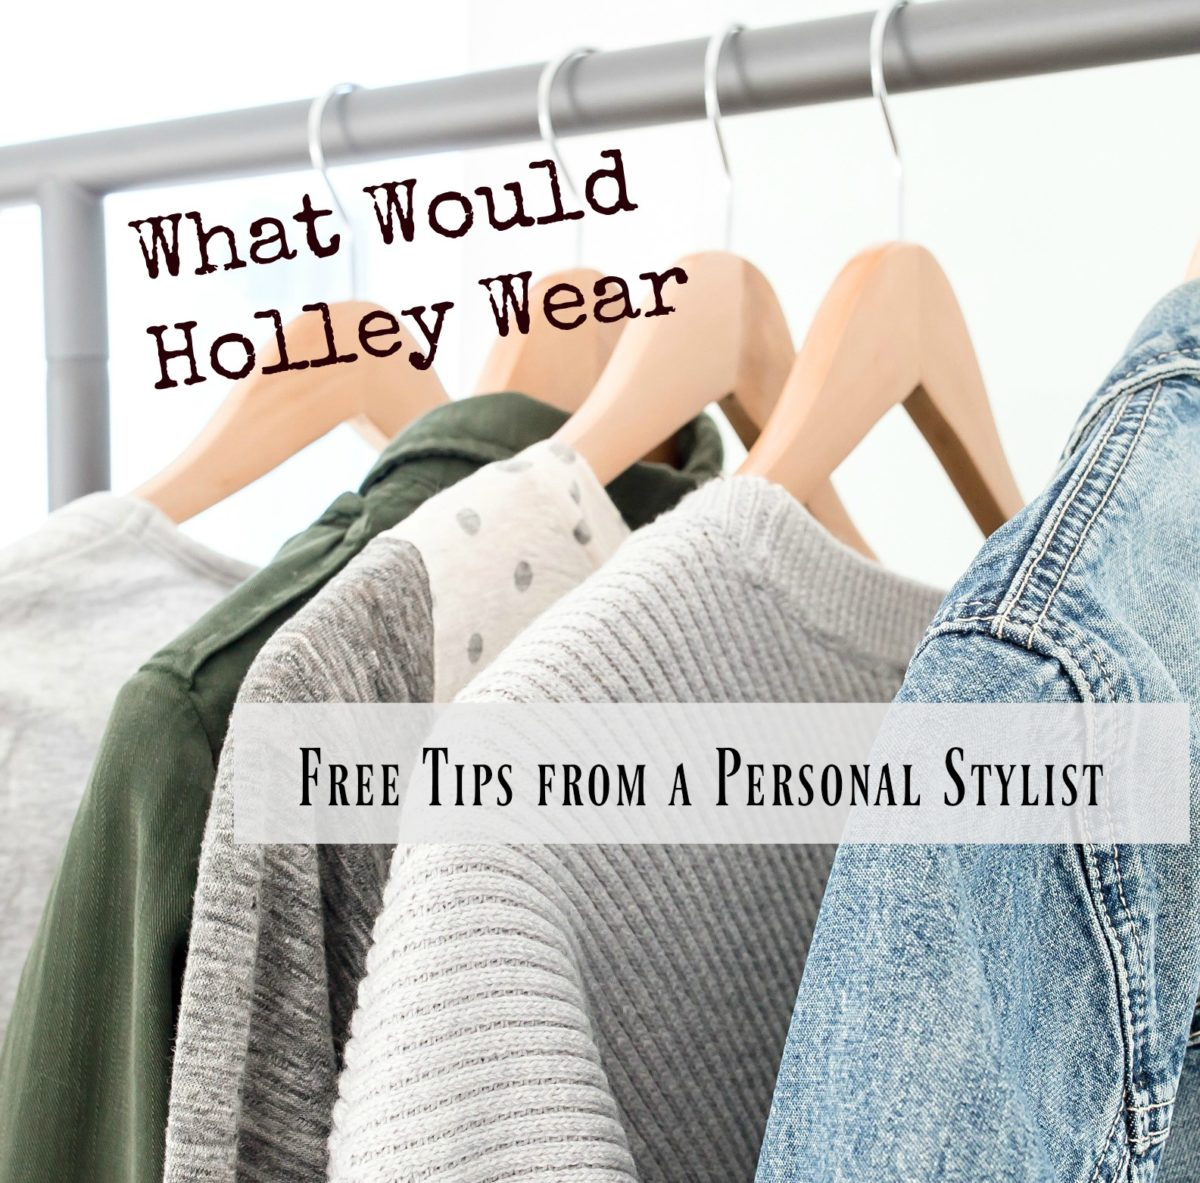 What Would Holley Wear:  Free Tips from a Personal Stylist